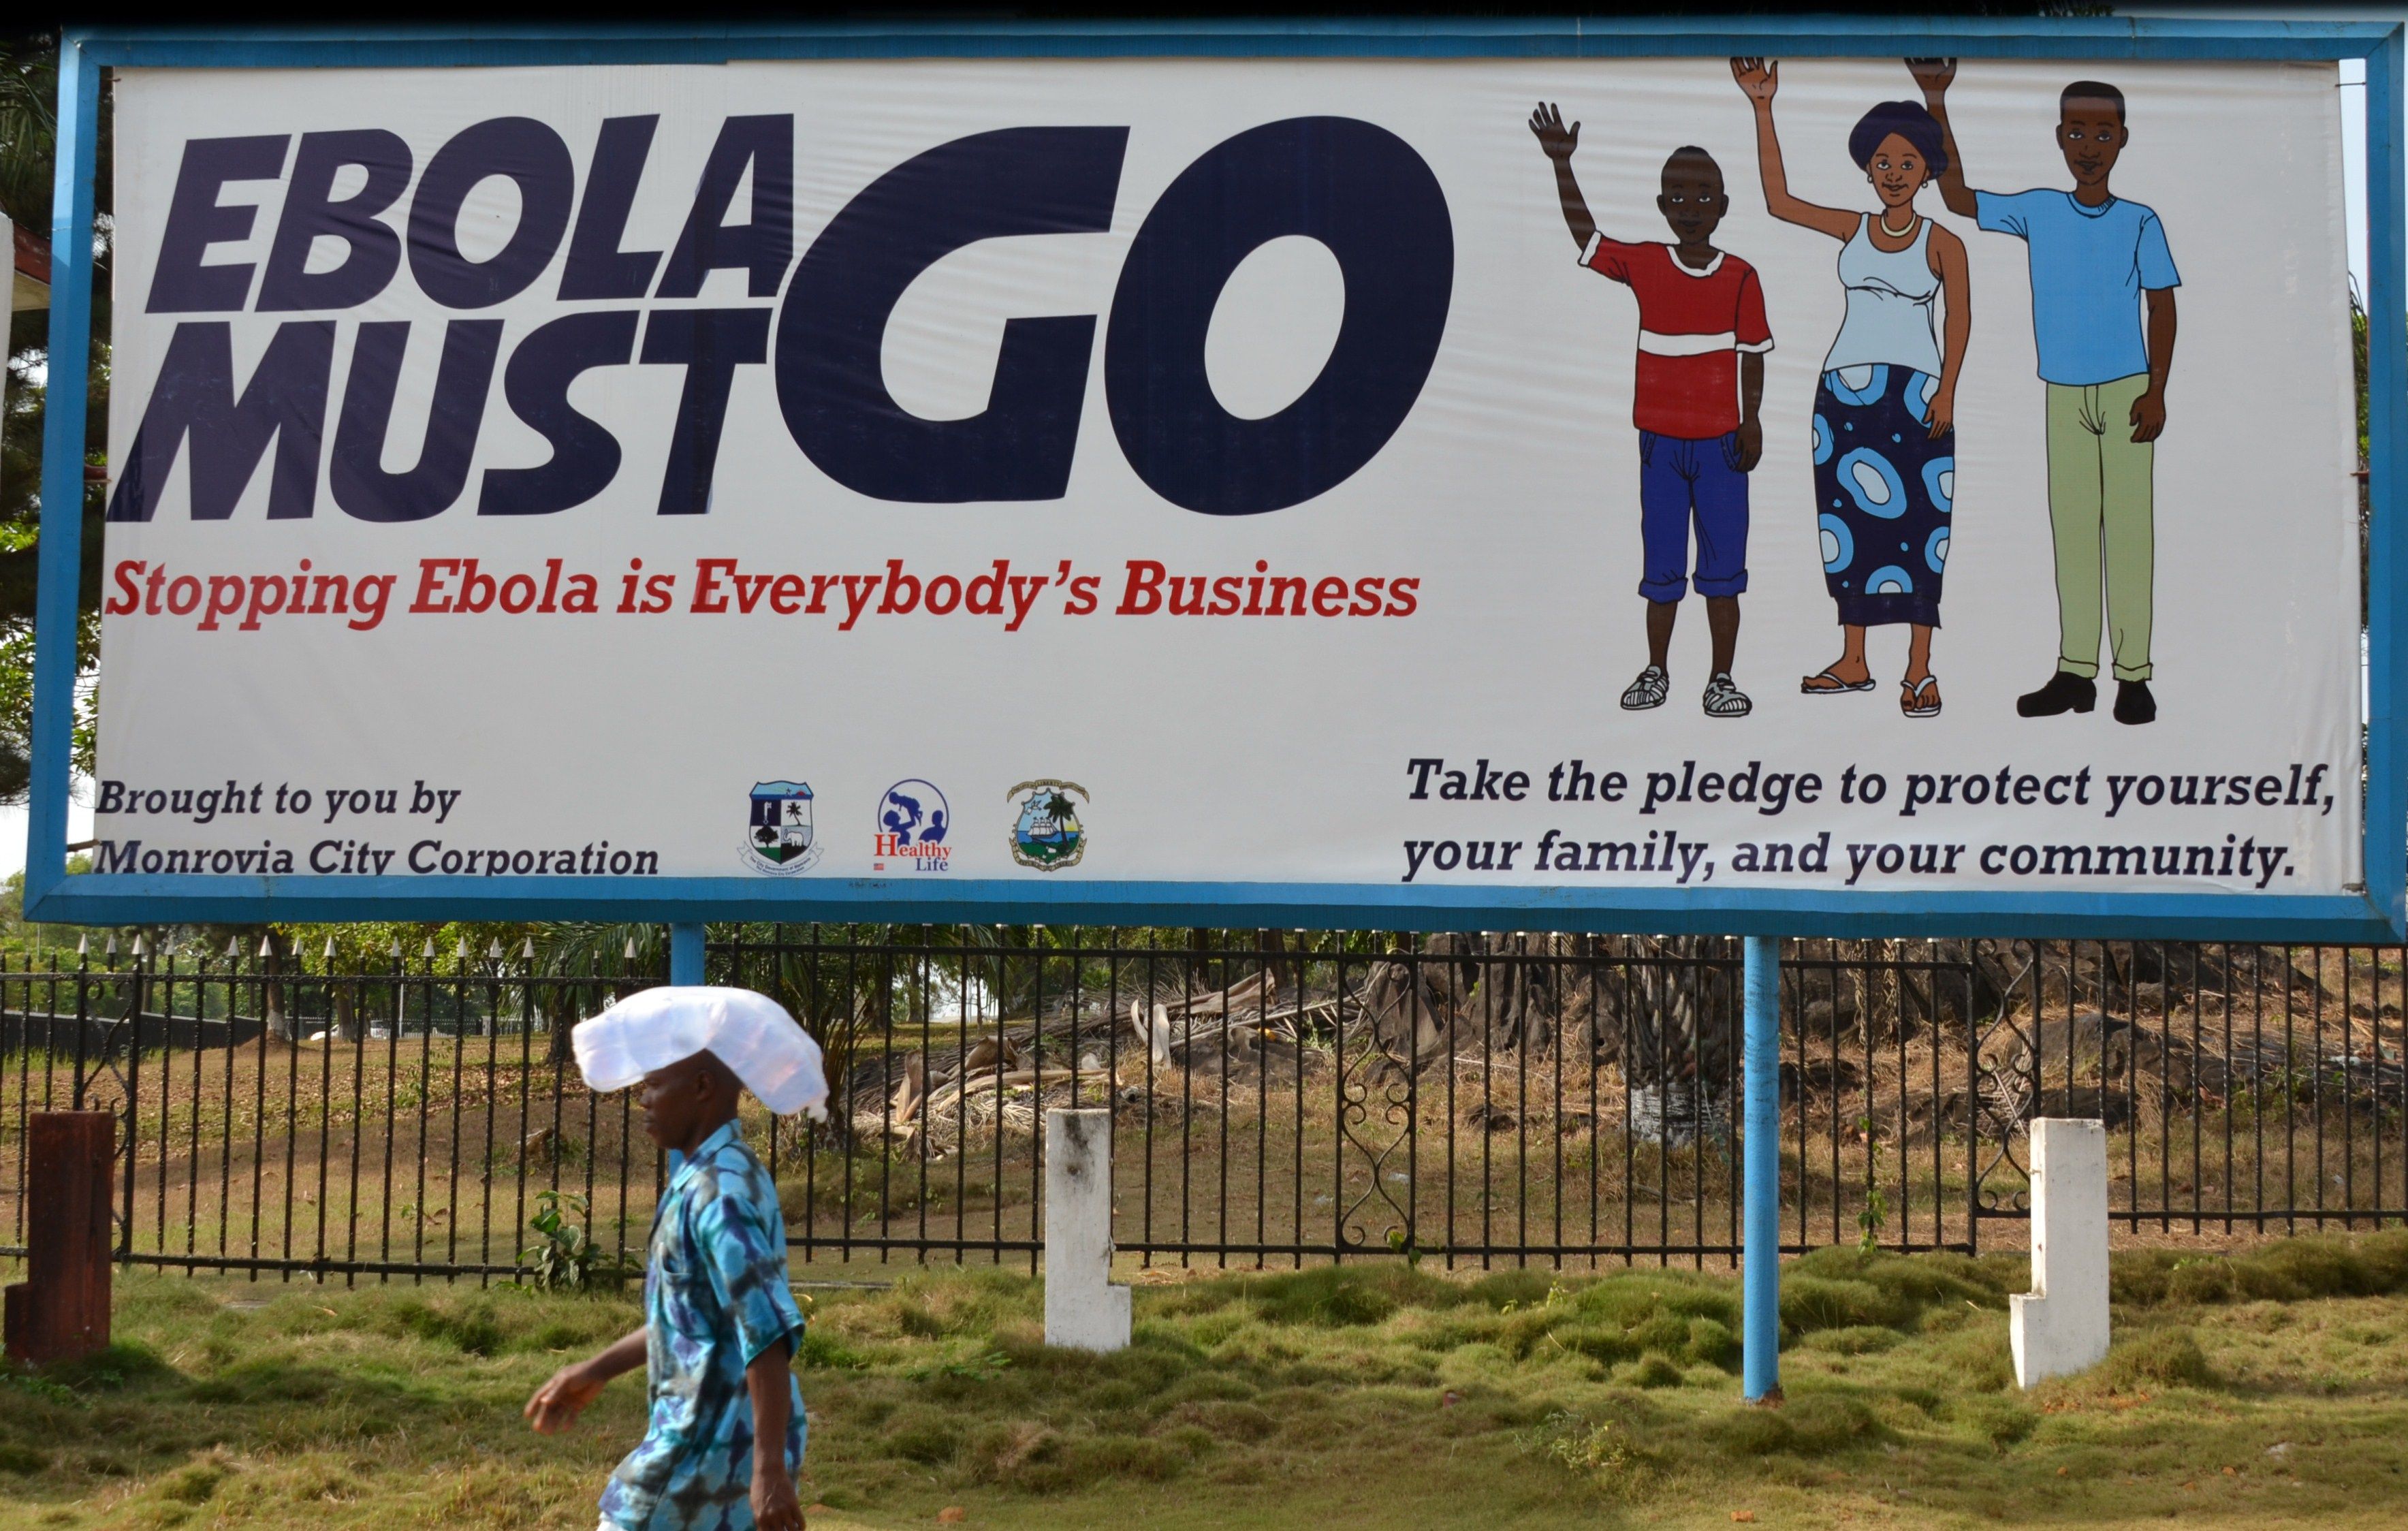 A man walks past an ebola campaign banner with the new slogan  Ebola Must GO  in Monrovia, Liberia on Feb. 23, 2015.